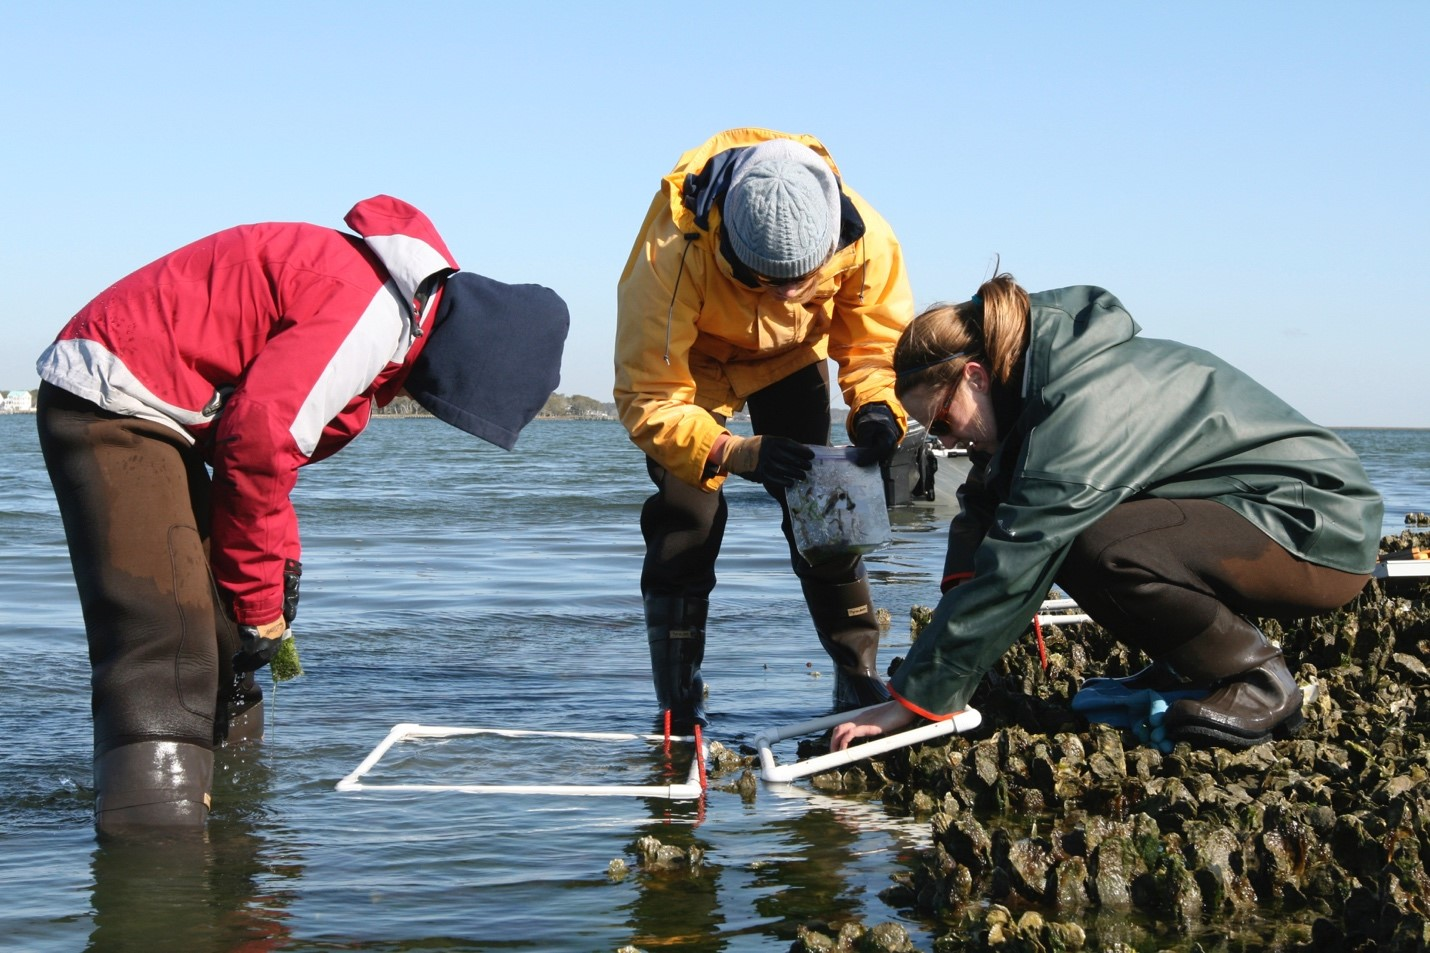 three scientists wearing waders stand in ankle-deep water and conduct oyster research